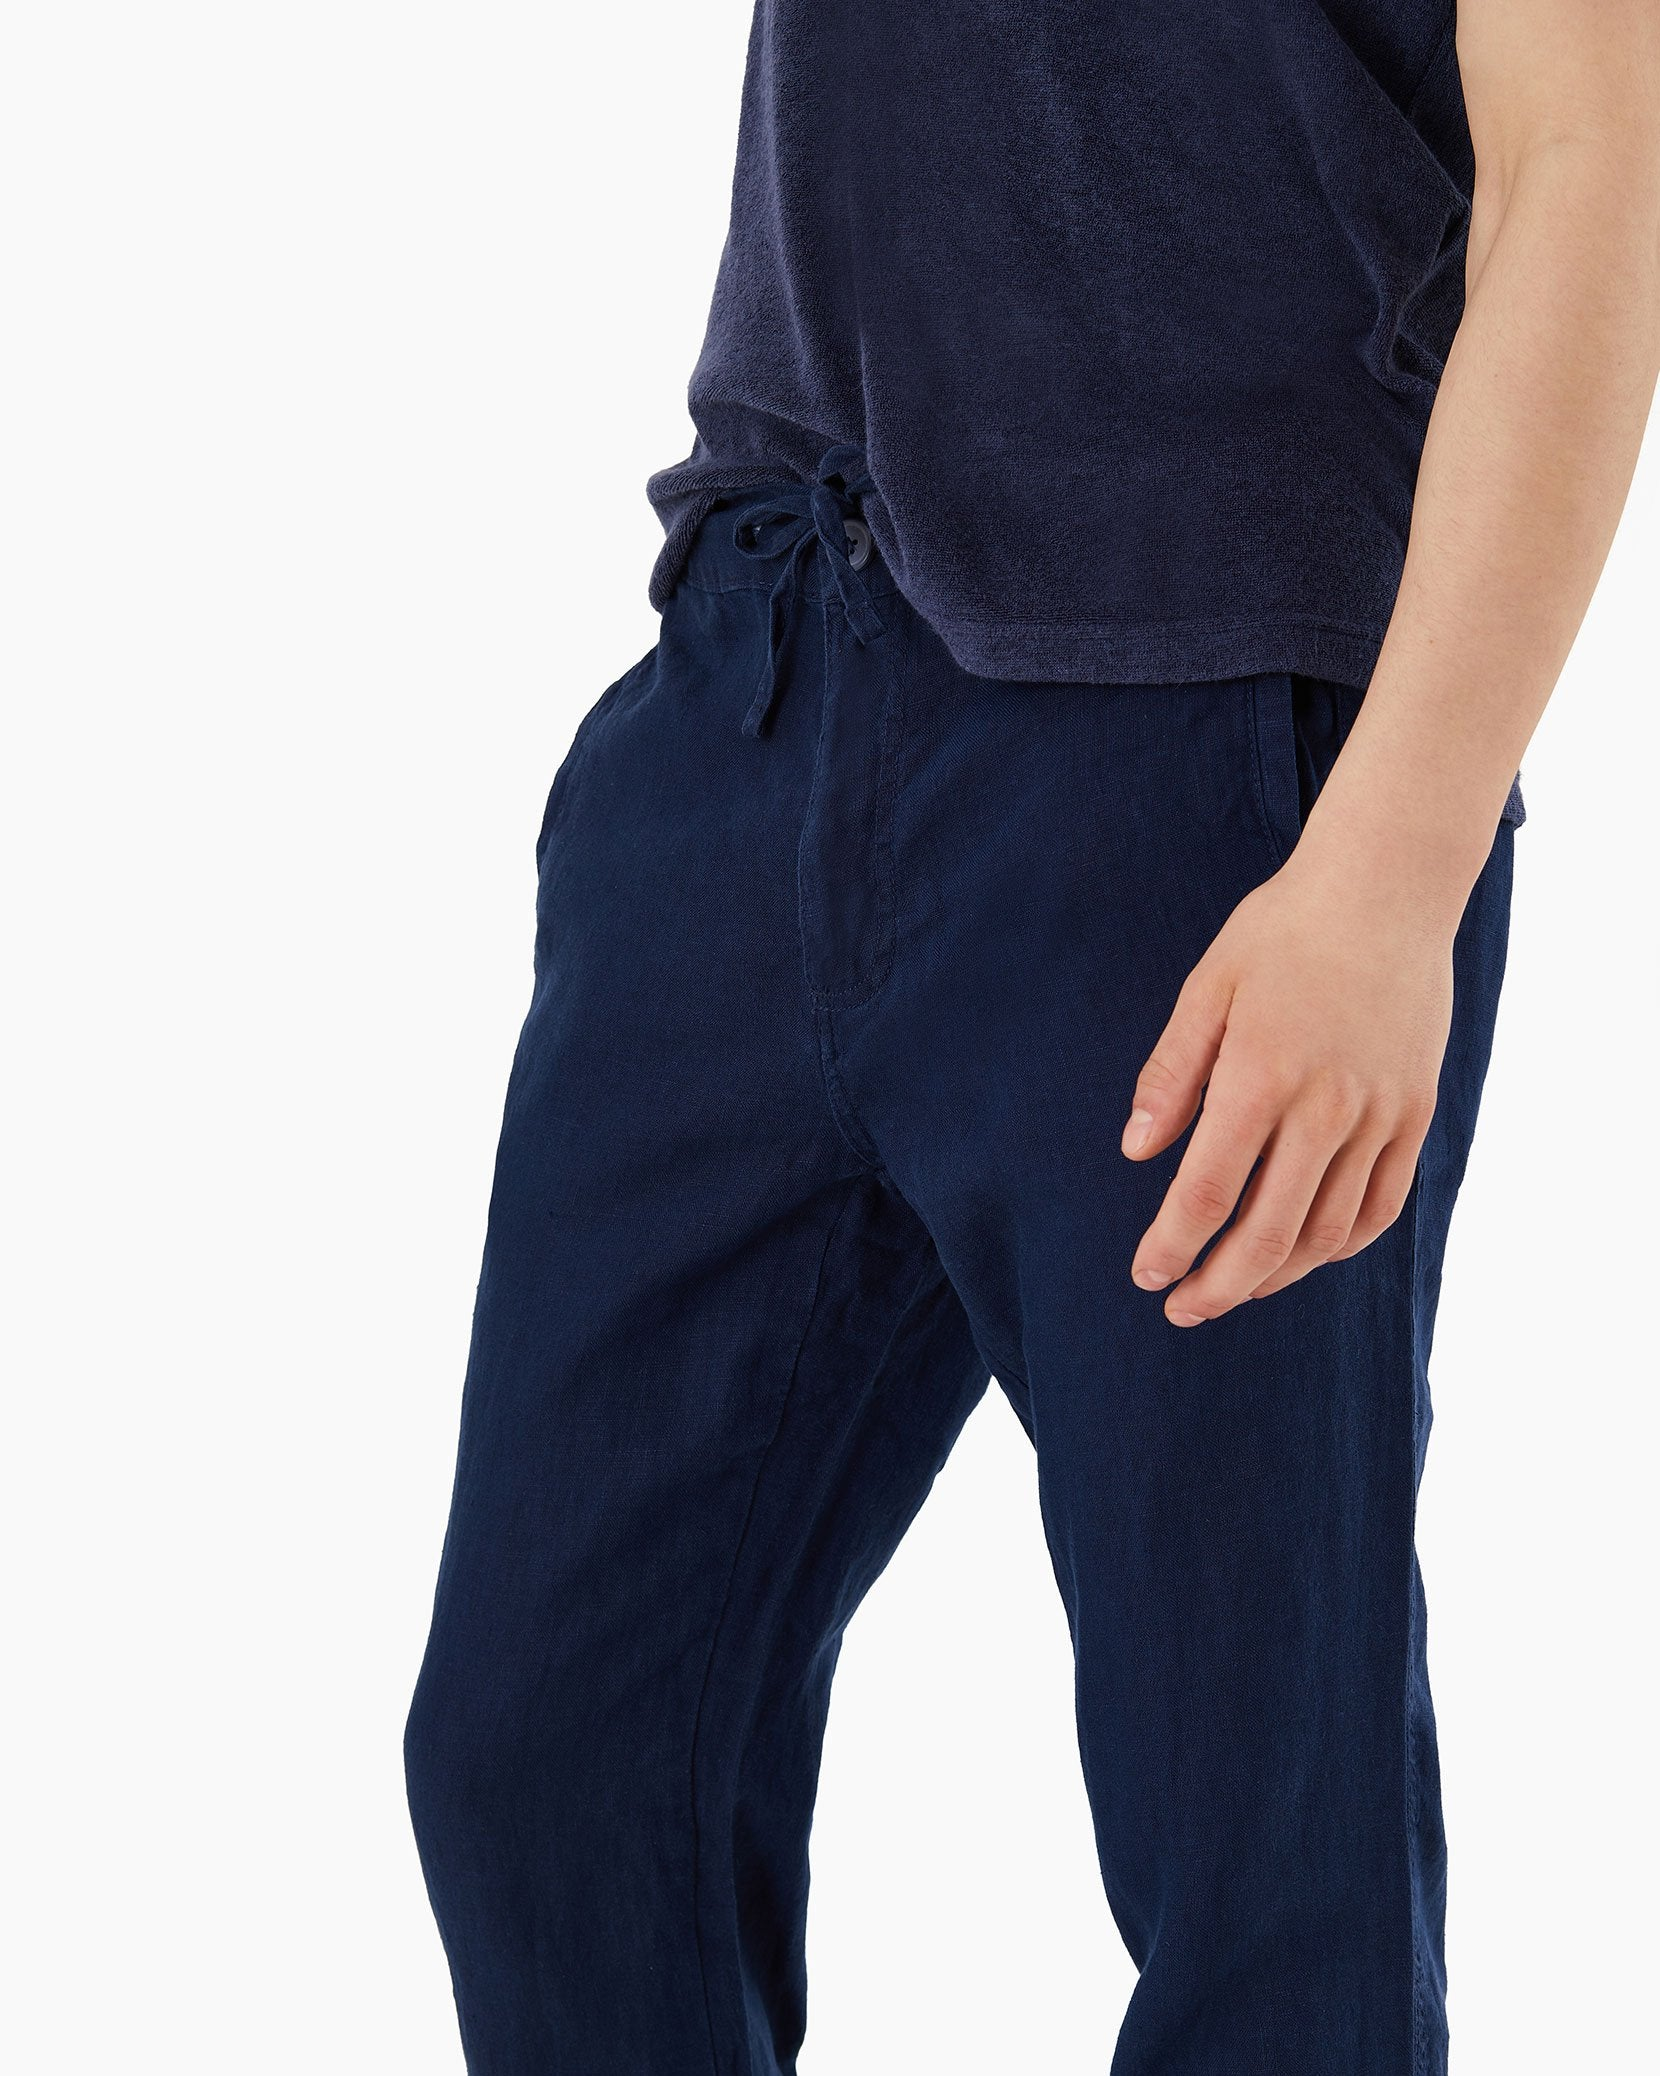 Collin Linen Pant in Deep Navy - 15 - Onia